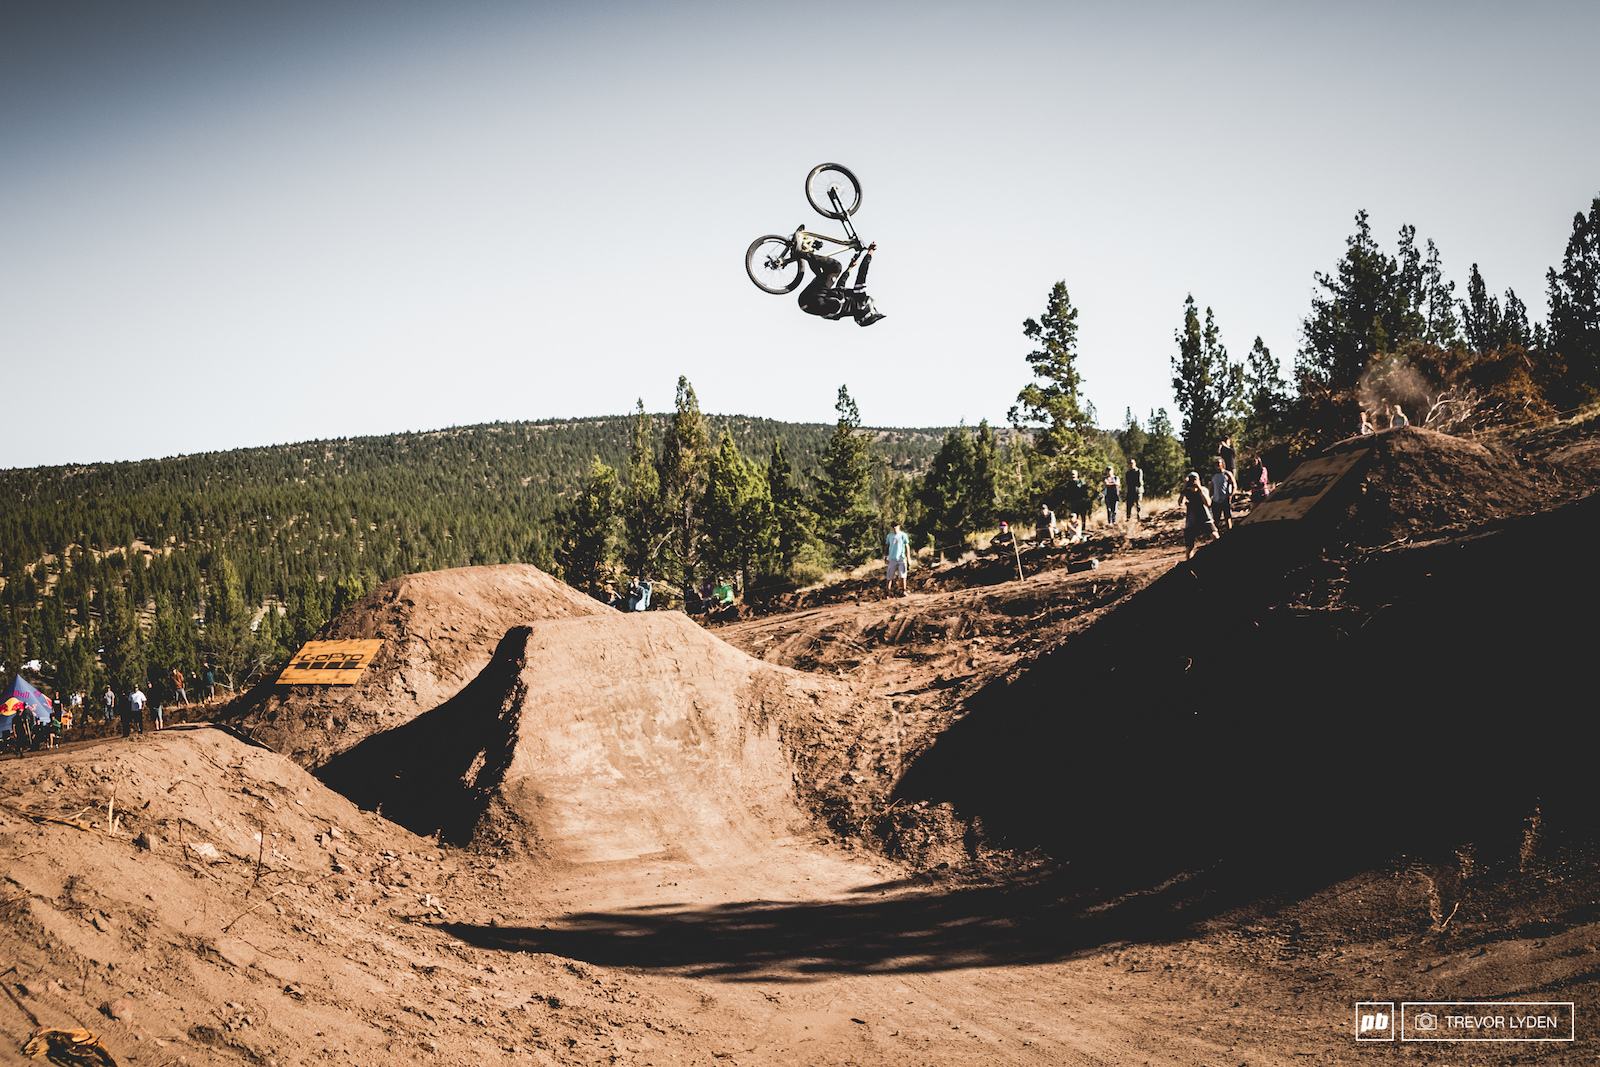 Alex Volokhov with an insane backflip over the canyon gap .